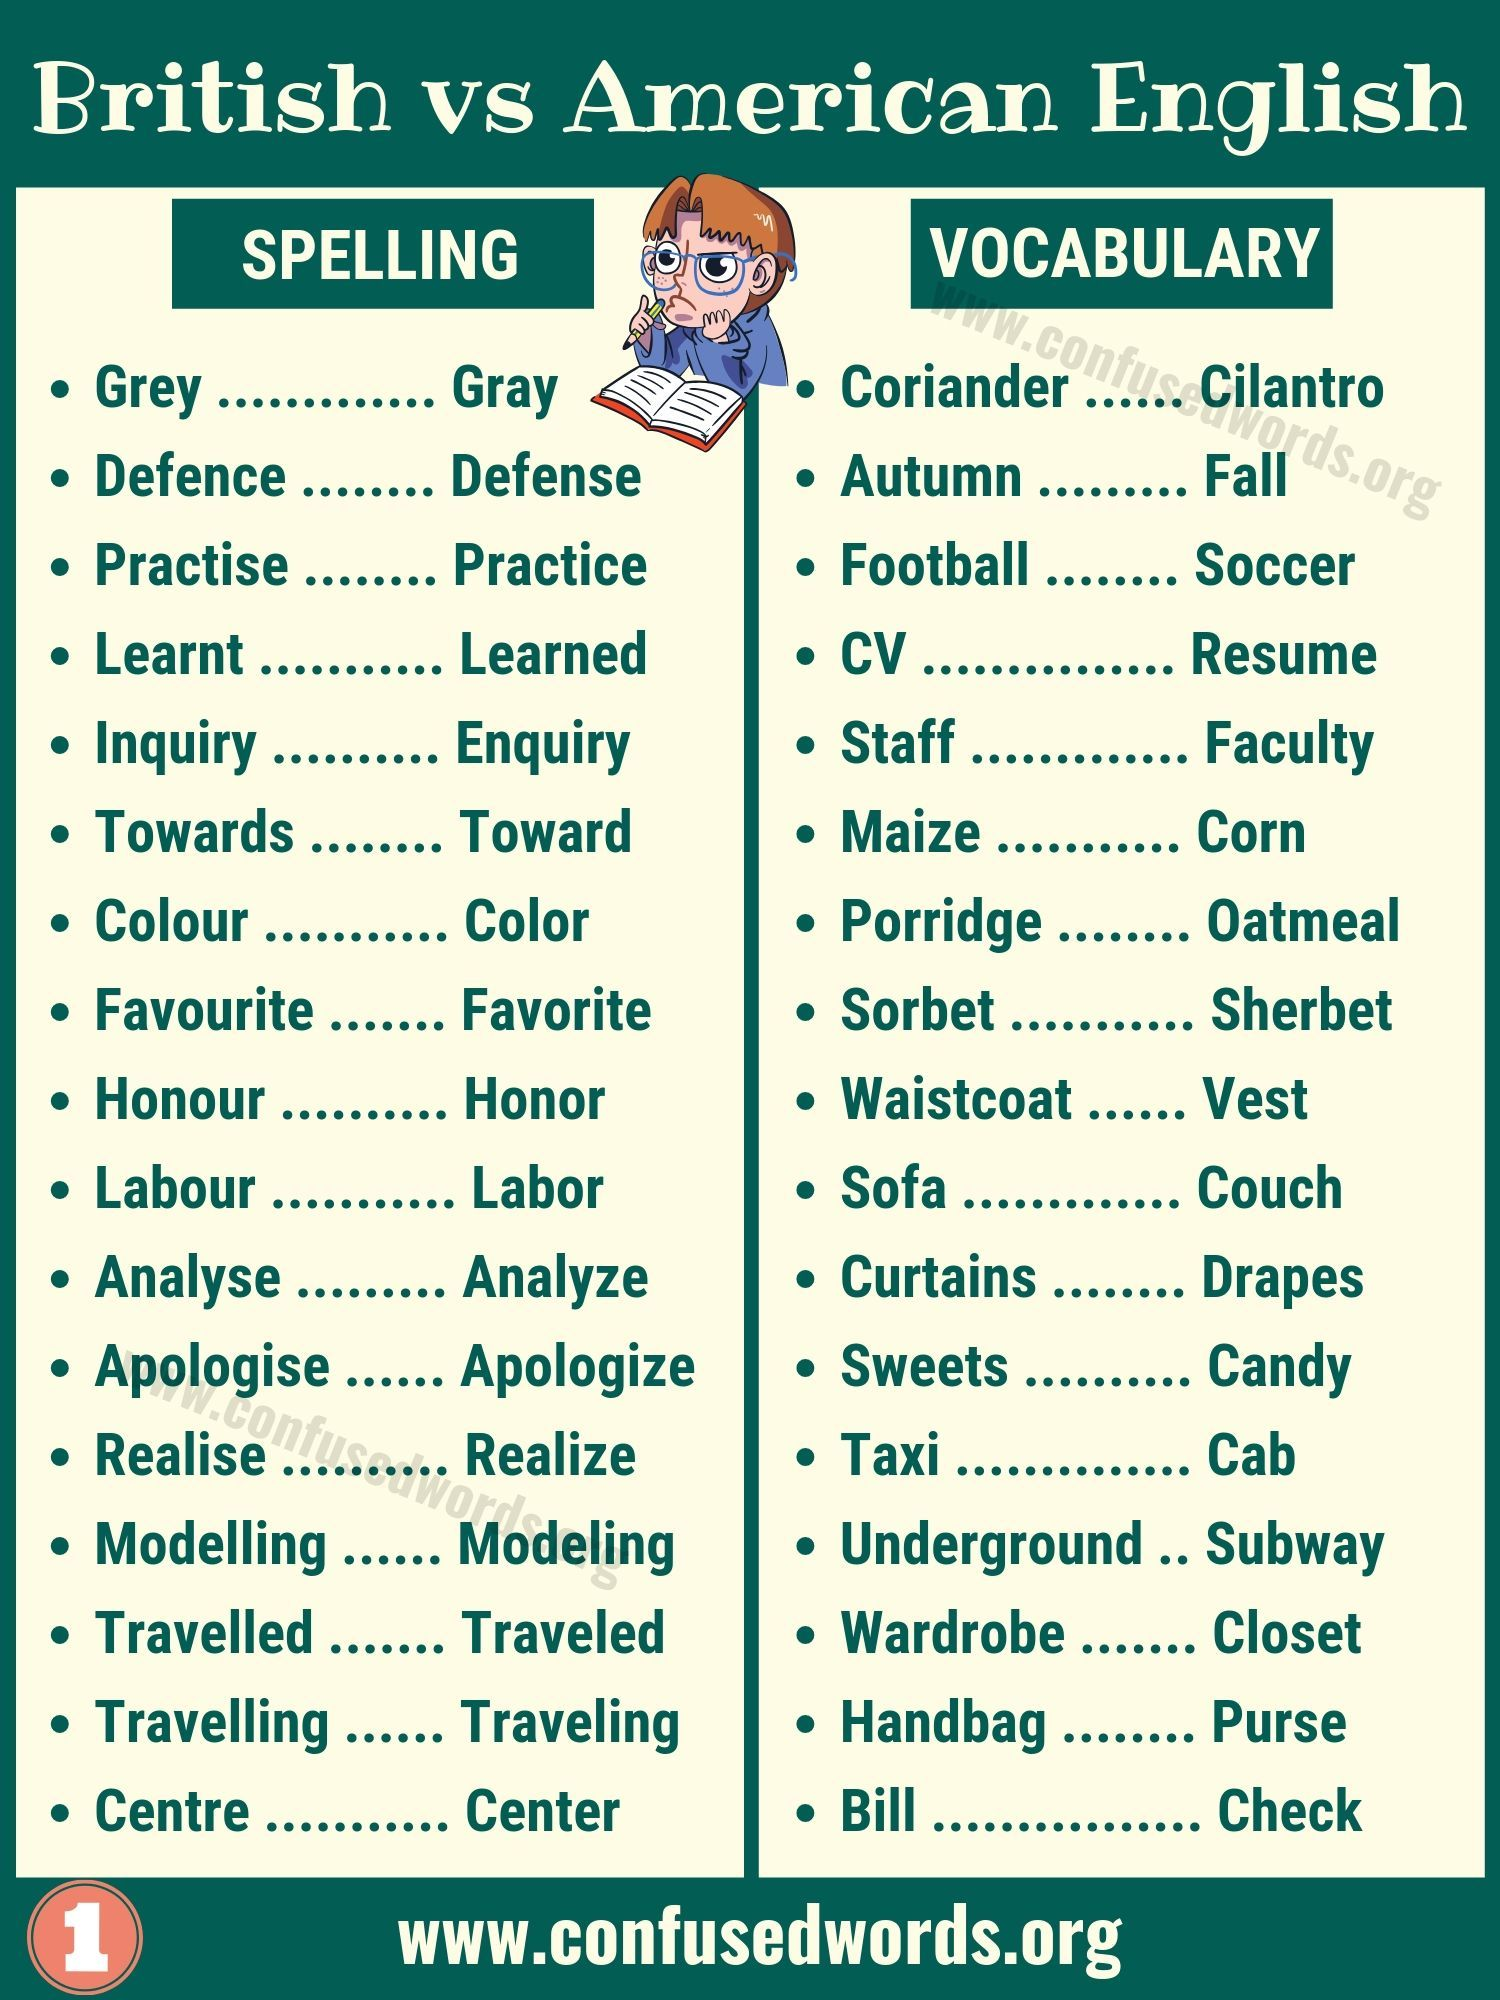 British English Vs American English What Are The Differences Confused Words American English Words British And American Words British Vs American